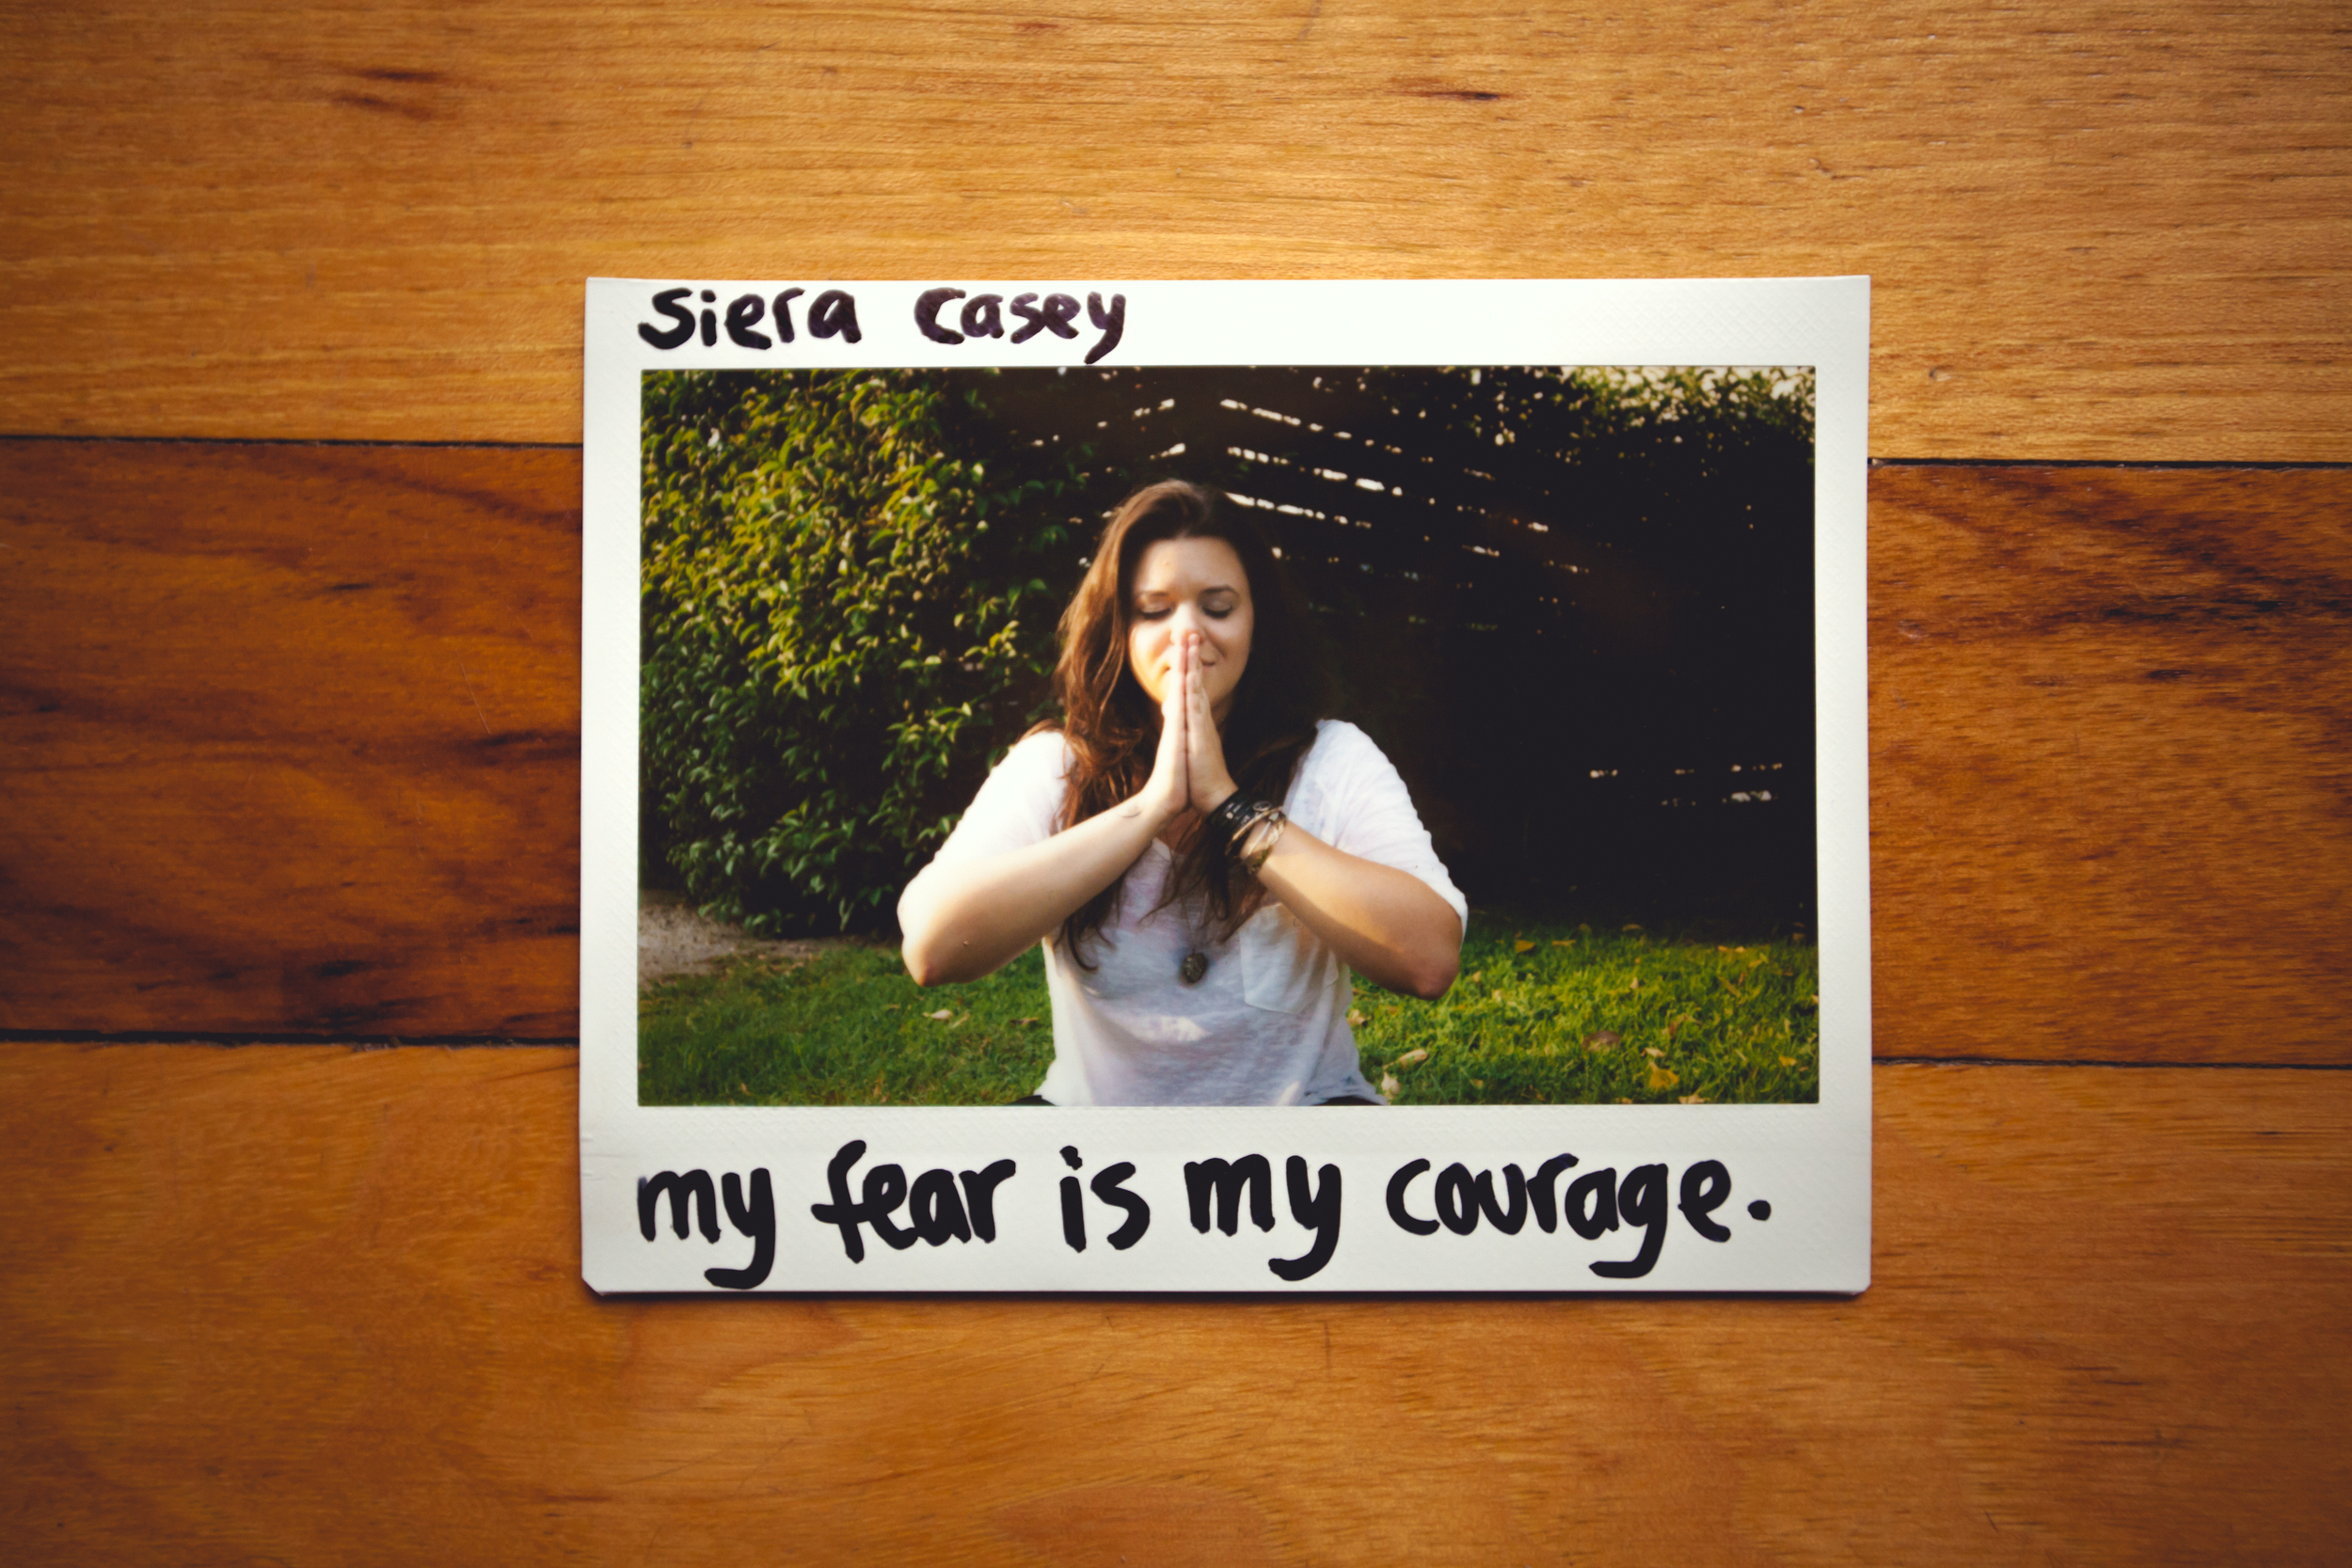 My Fear is my Courage